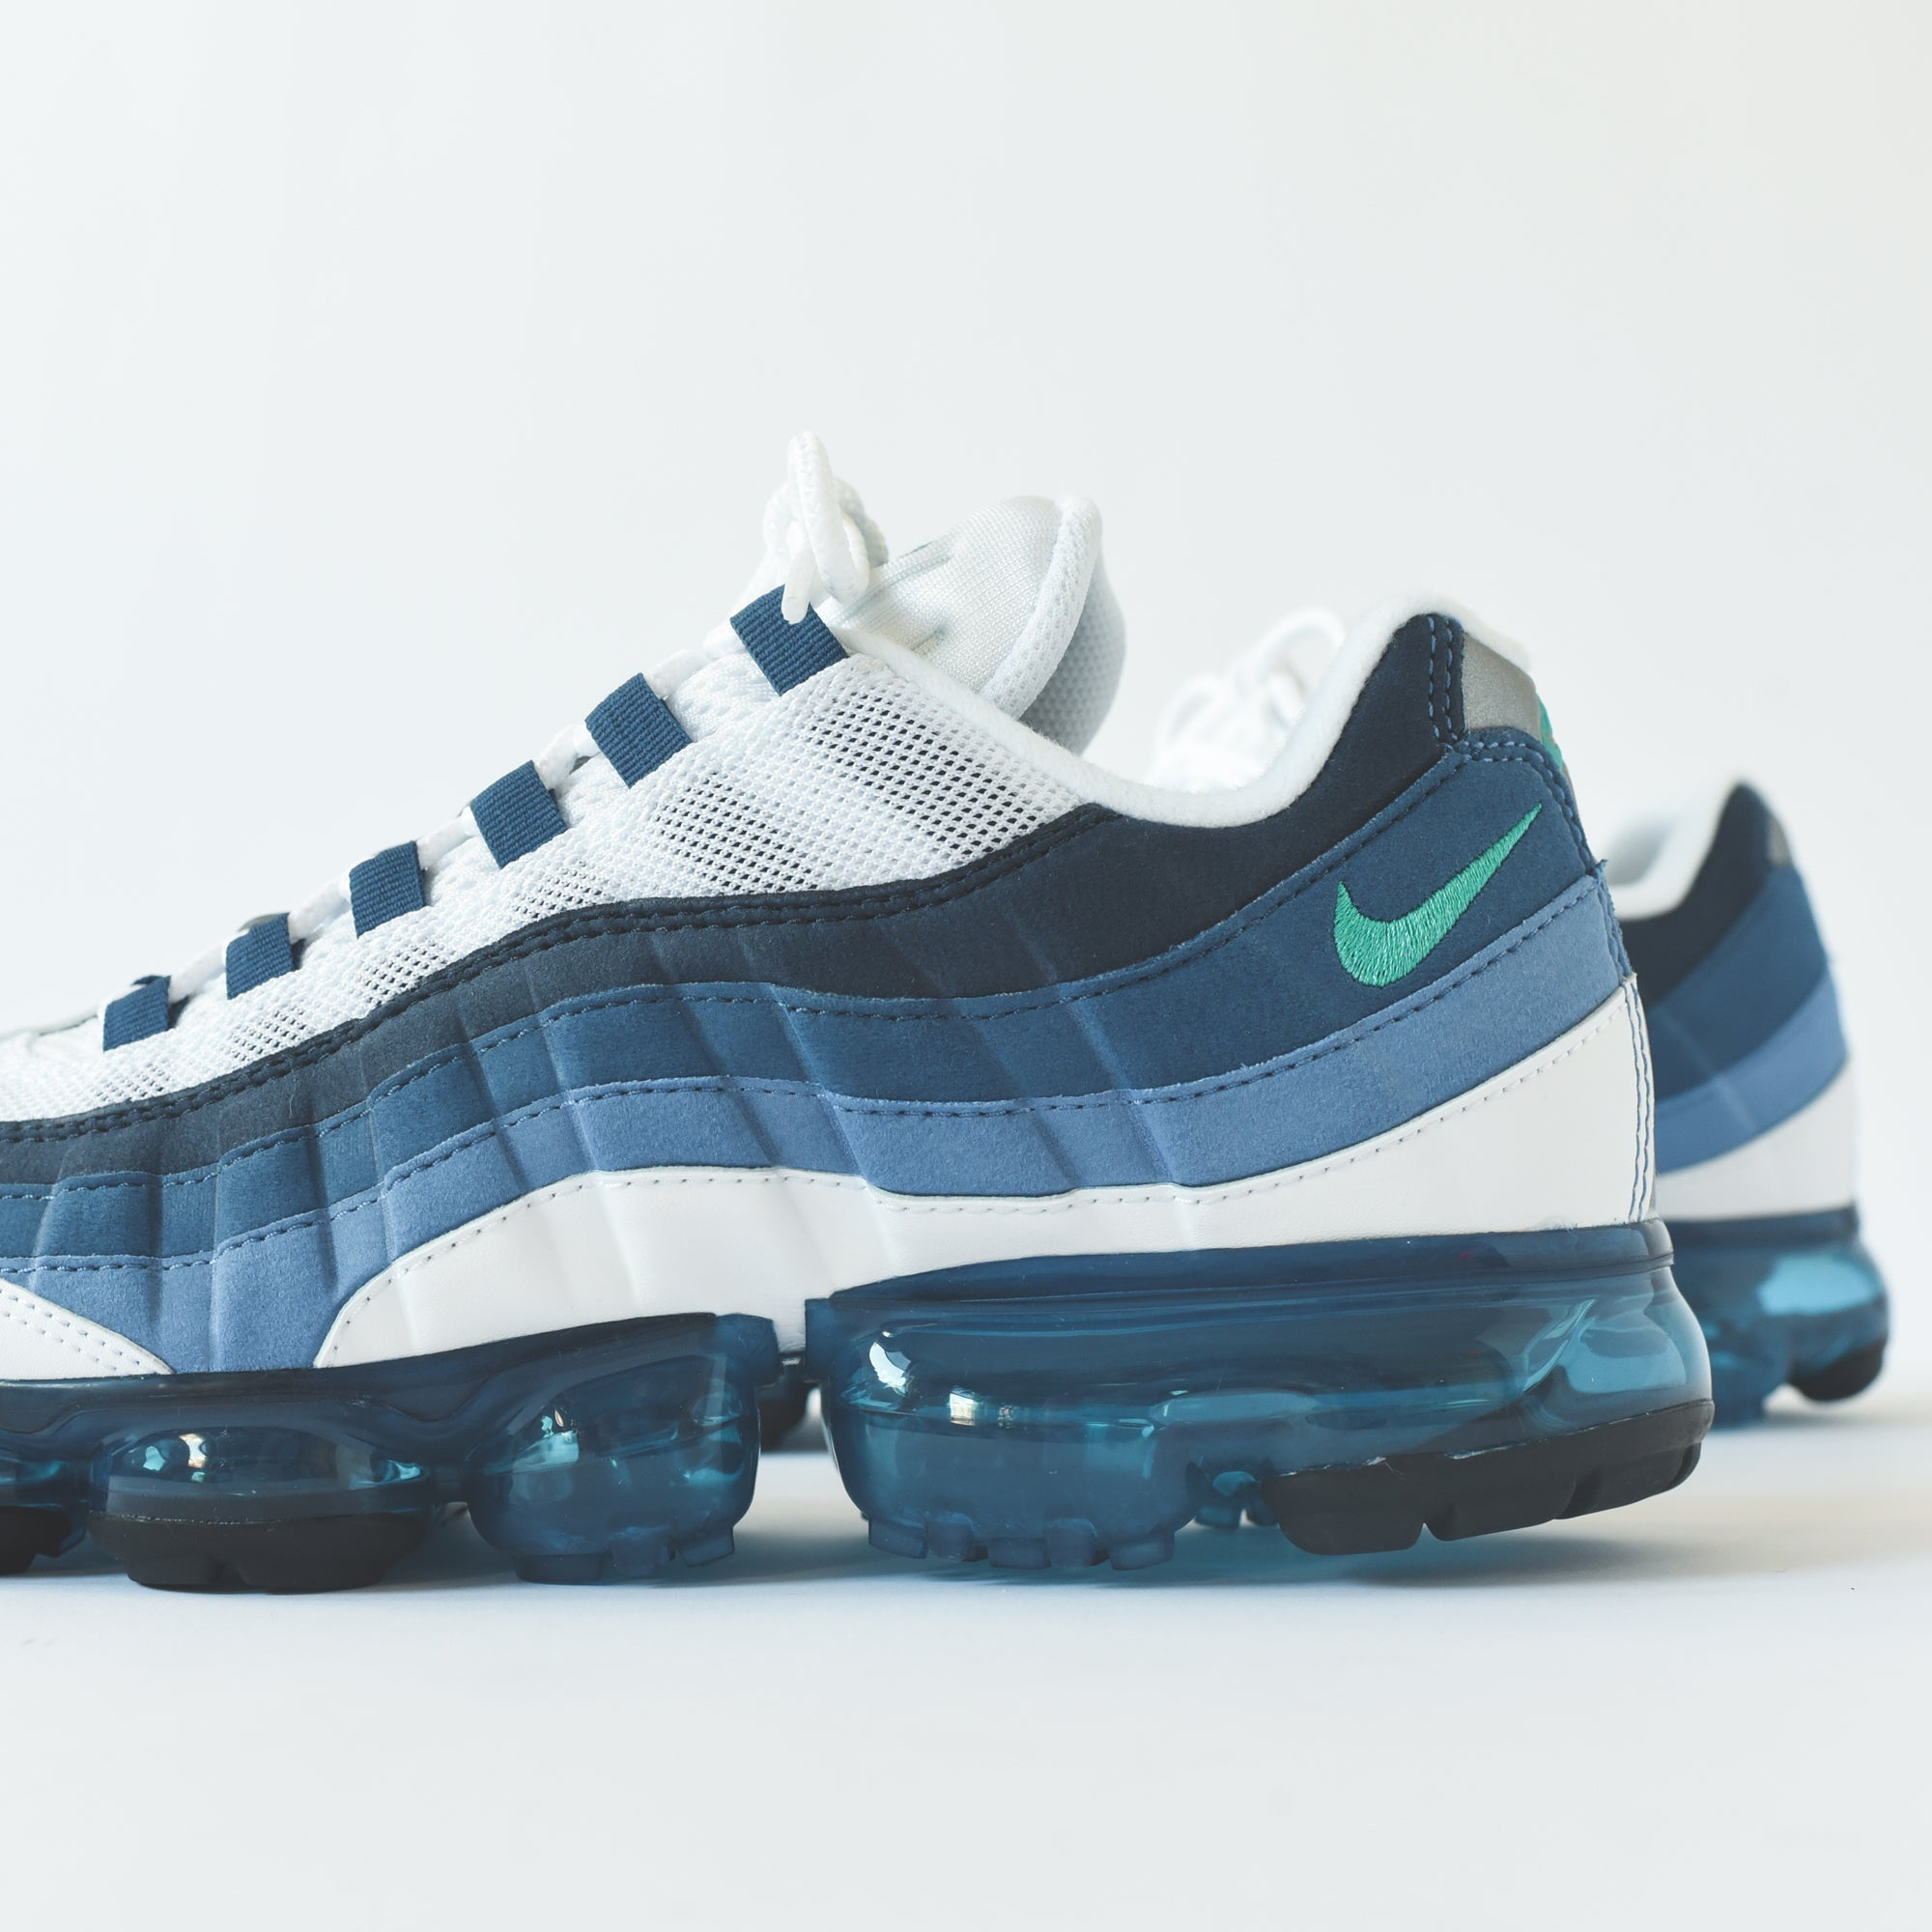 new styles 1ffa8 206f0 Nike Air VaporMax '95 - White / New Green / French Blue Lake ...